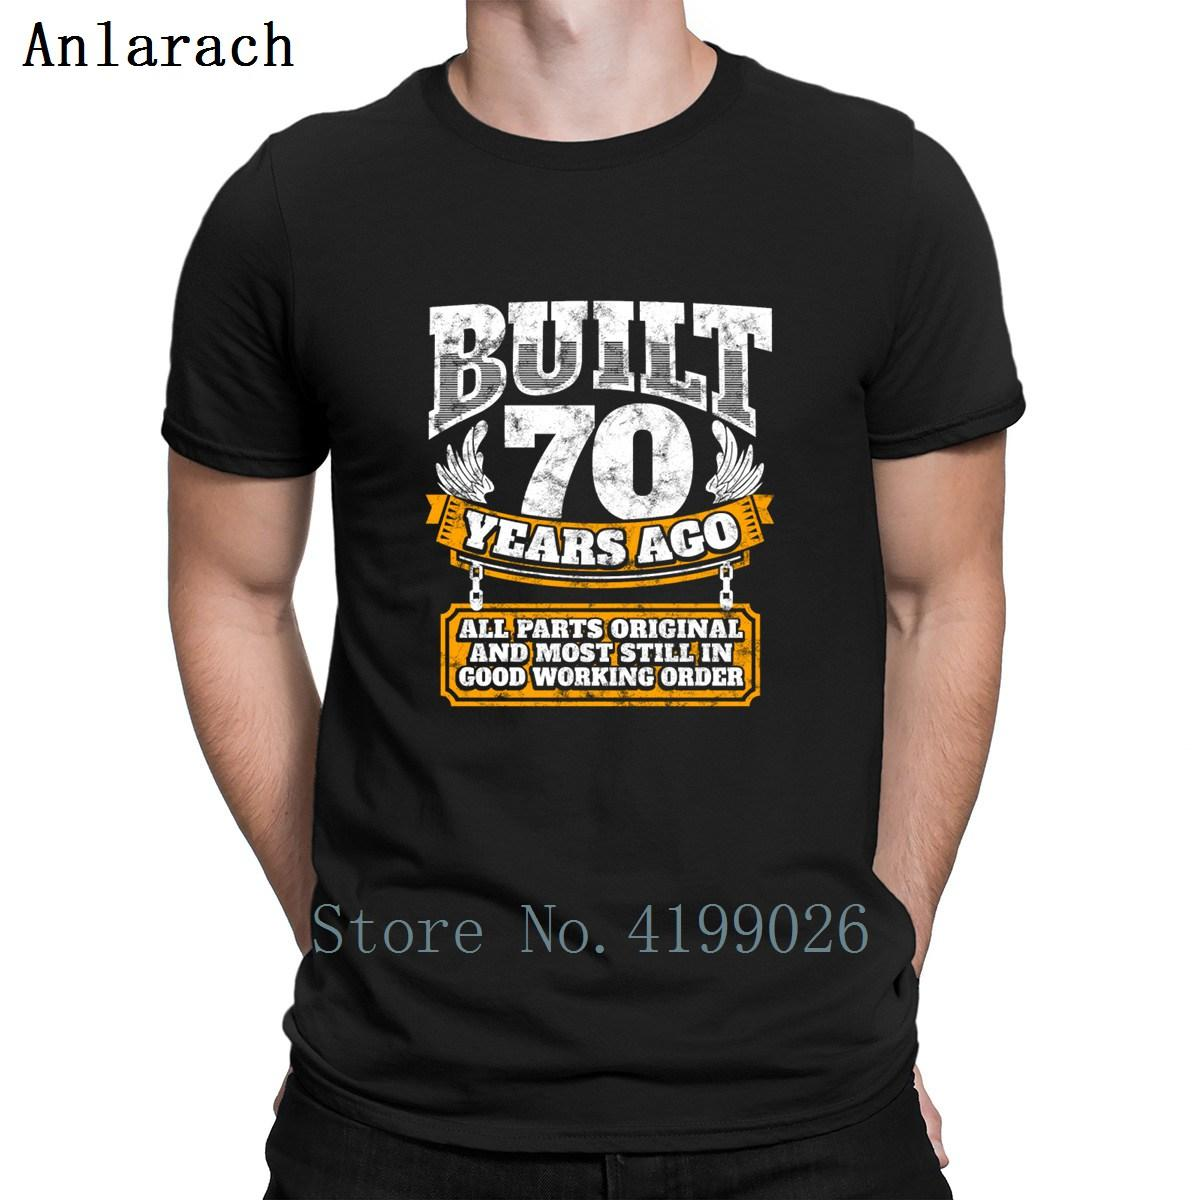 70th Birthday Gift Idea Built 70 Years Ago Tshirts Fashion Summer Top Male 2018 MenS Tshirt Fun Plus Size Outfit Customize T Shirt Sayings Retro